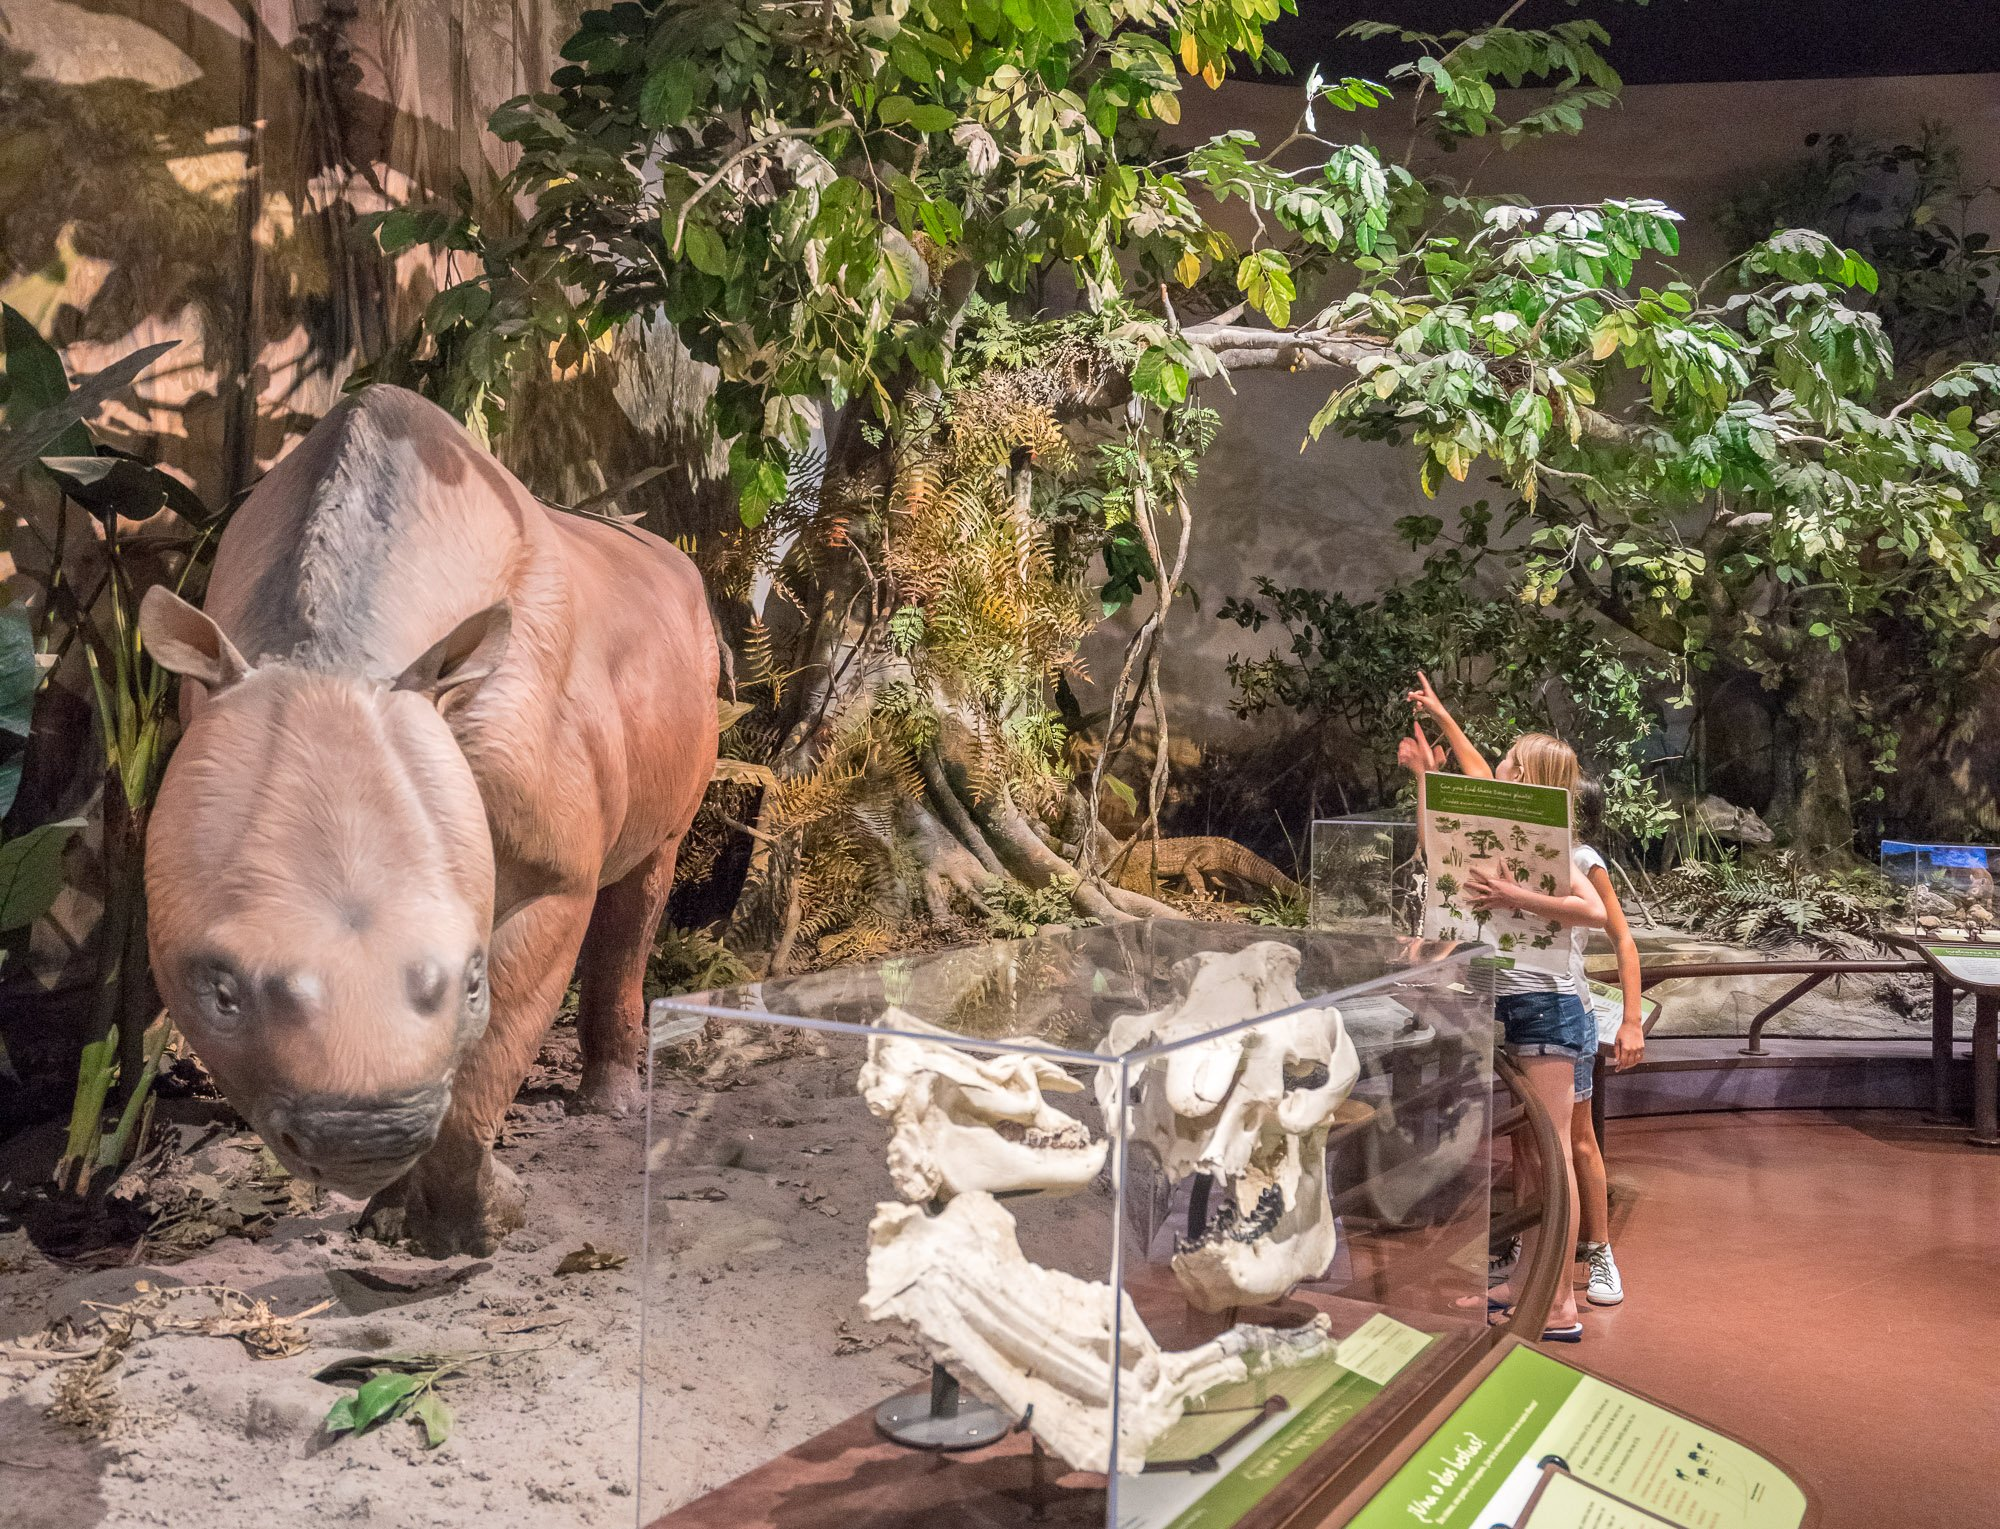 Things to do in Balboa Park: San Diego Natural History Museum